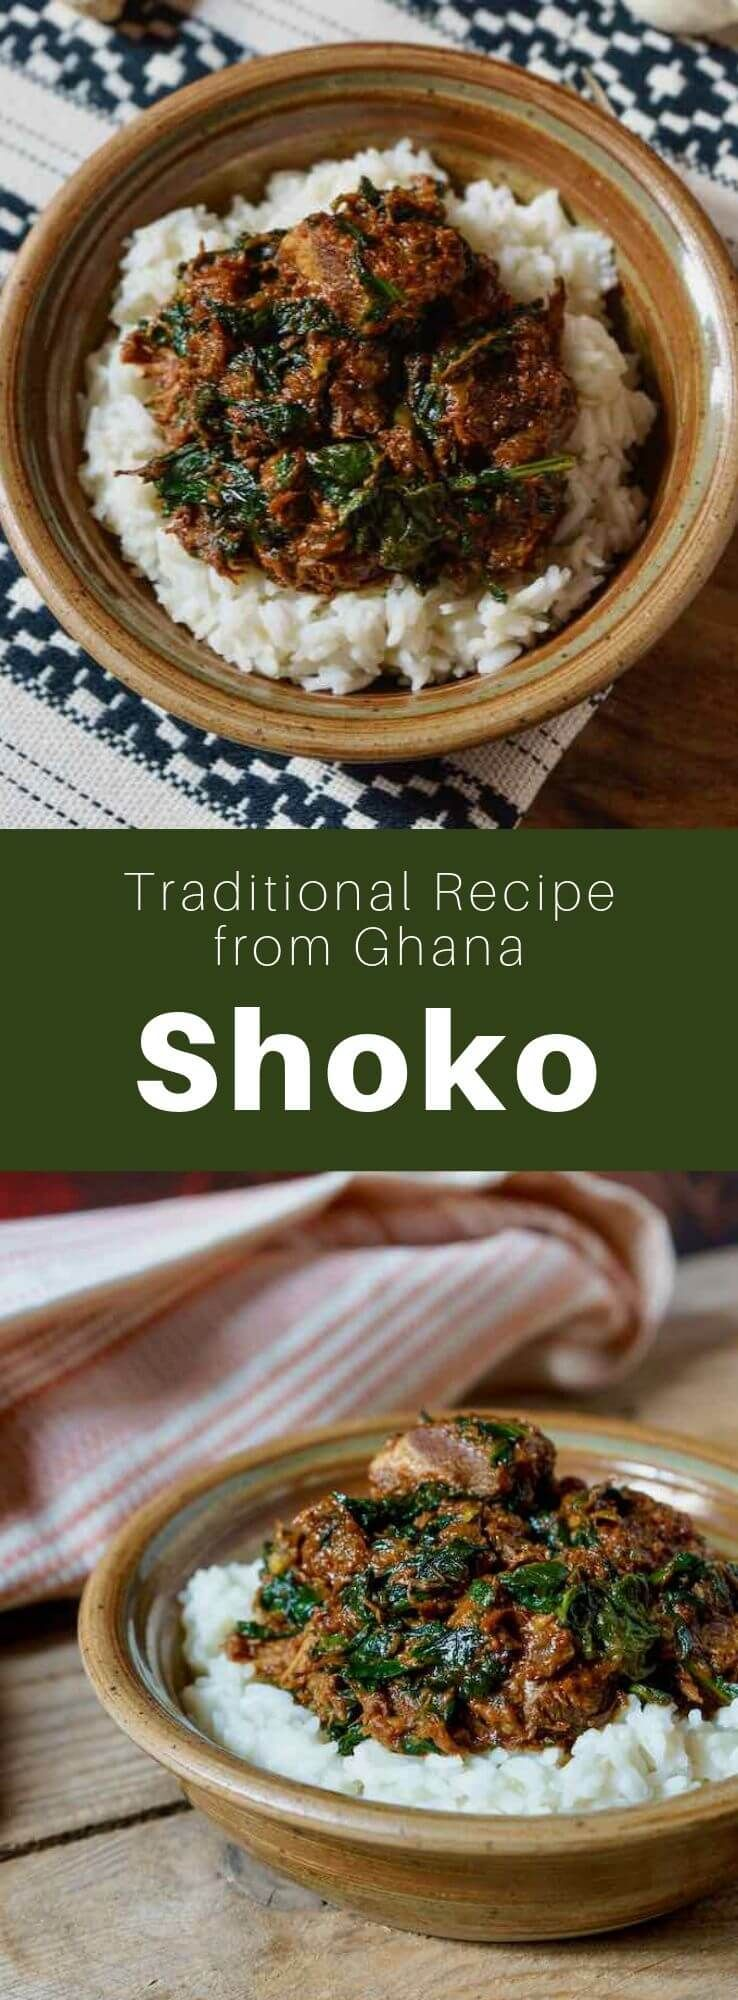 Shoko is a delicious traditional spiced stew from Ghana in ...